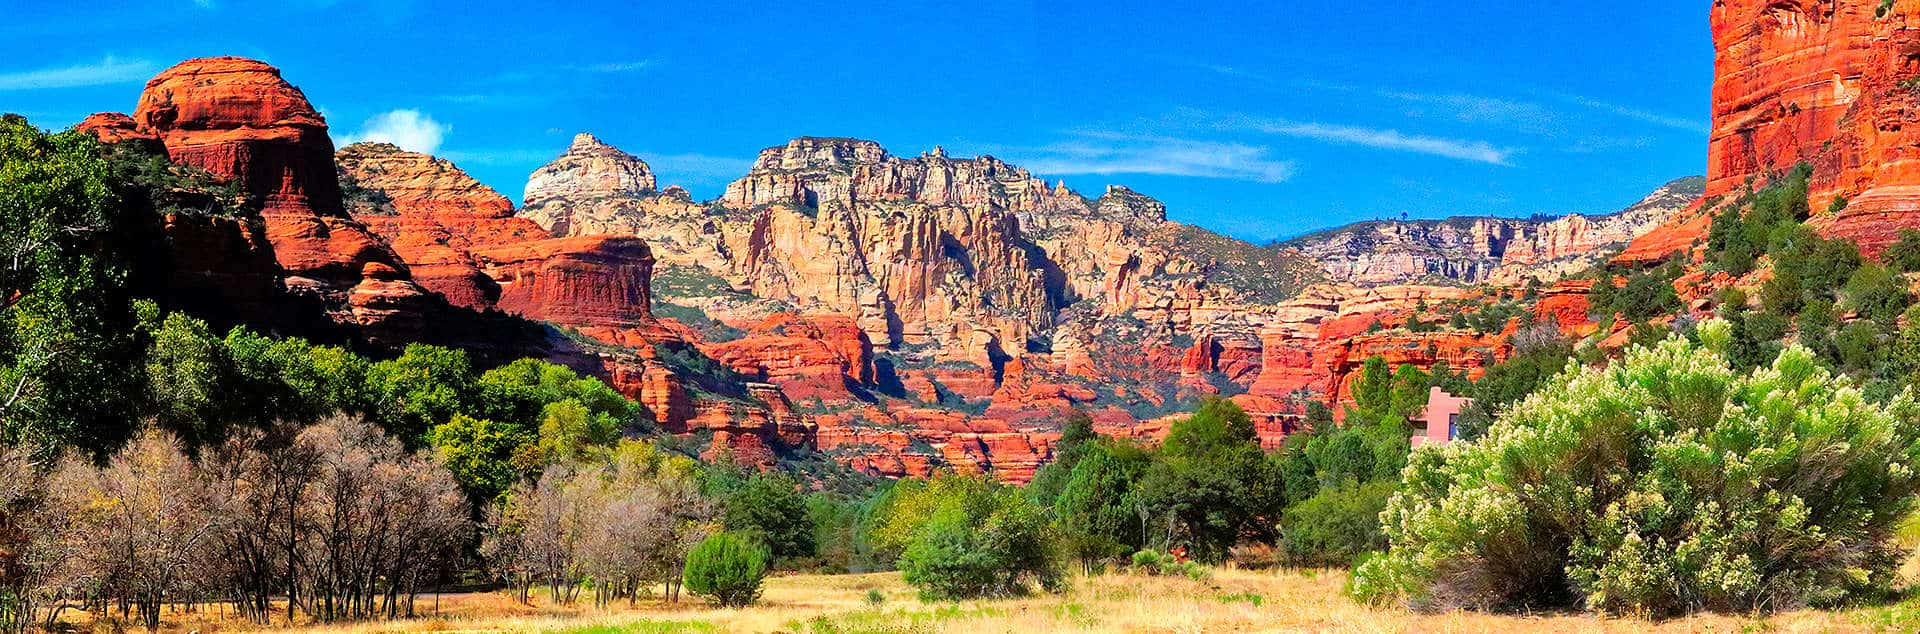 Sedona showing off by martinsullivandesign.com